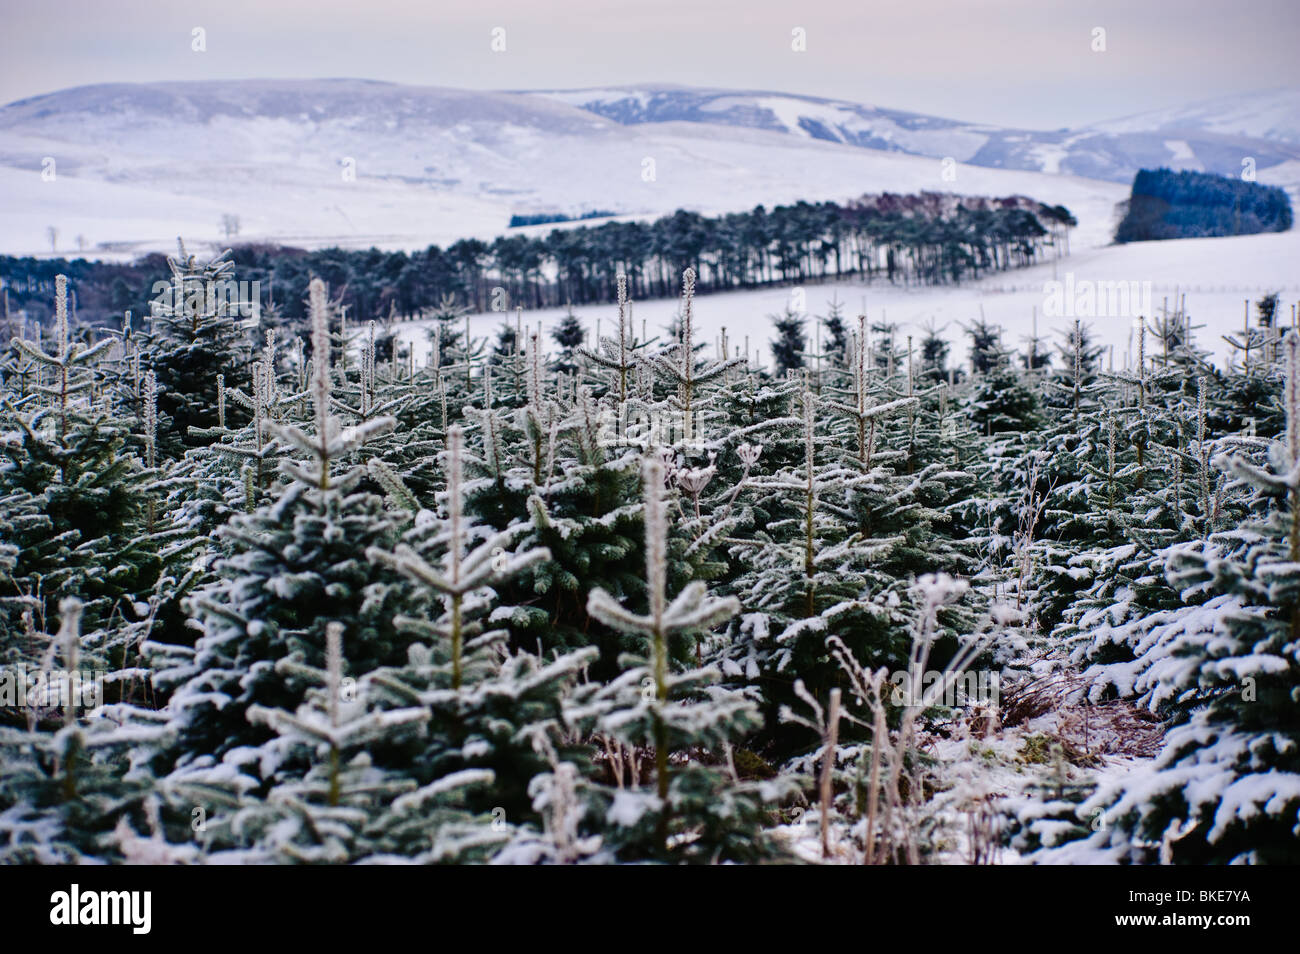 Christmas Tree Farm Snow High Resolution Stock Photography And Images Alamy